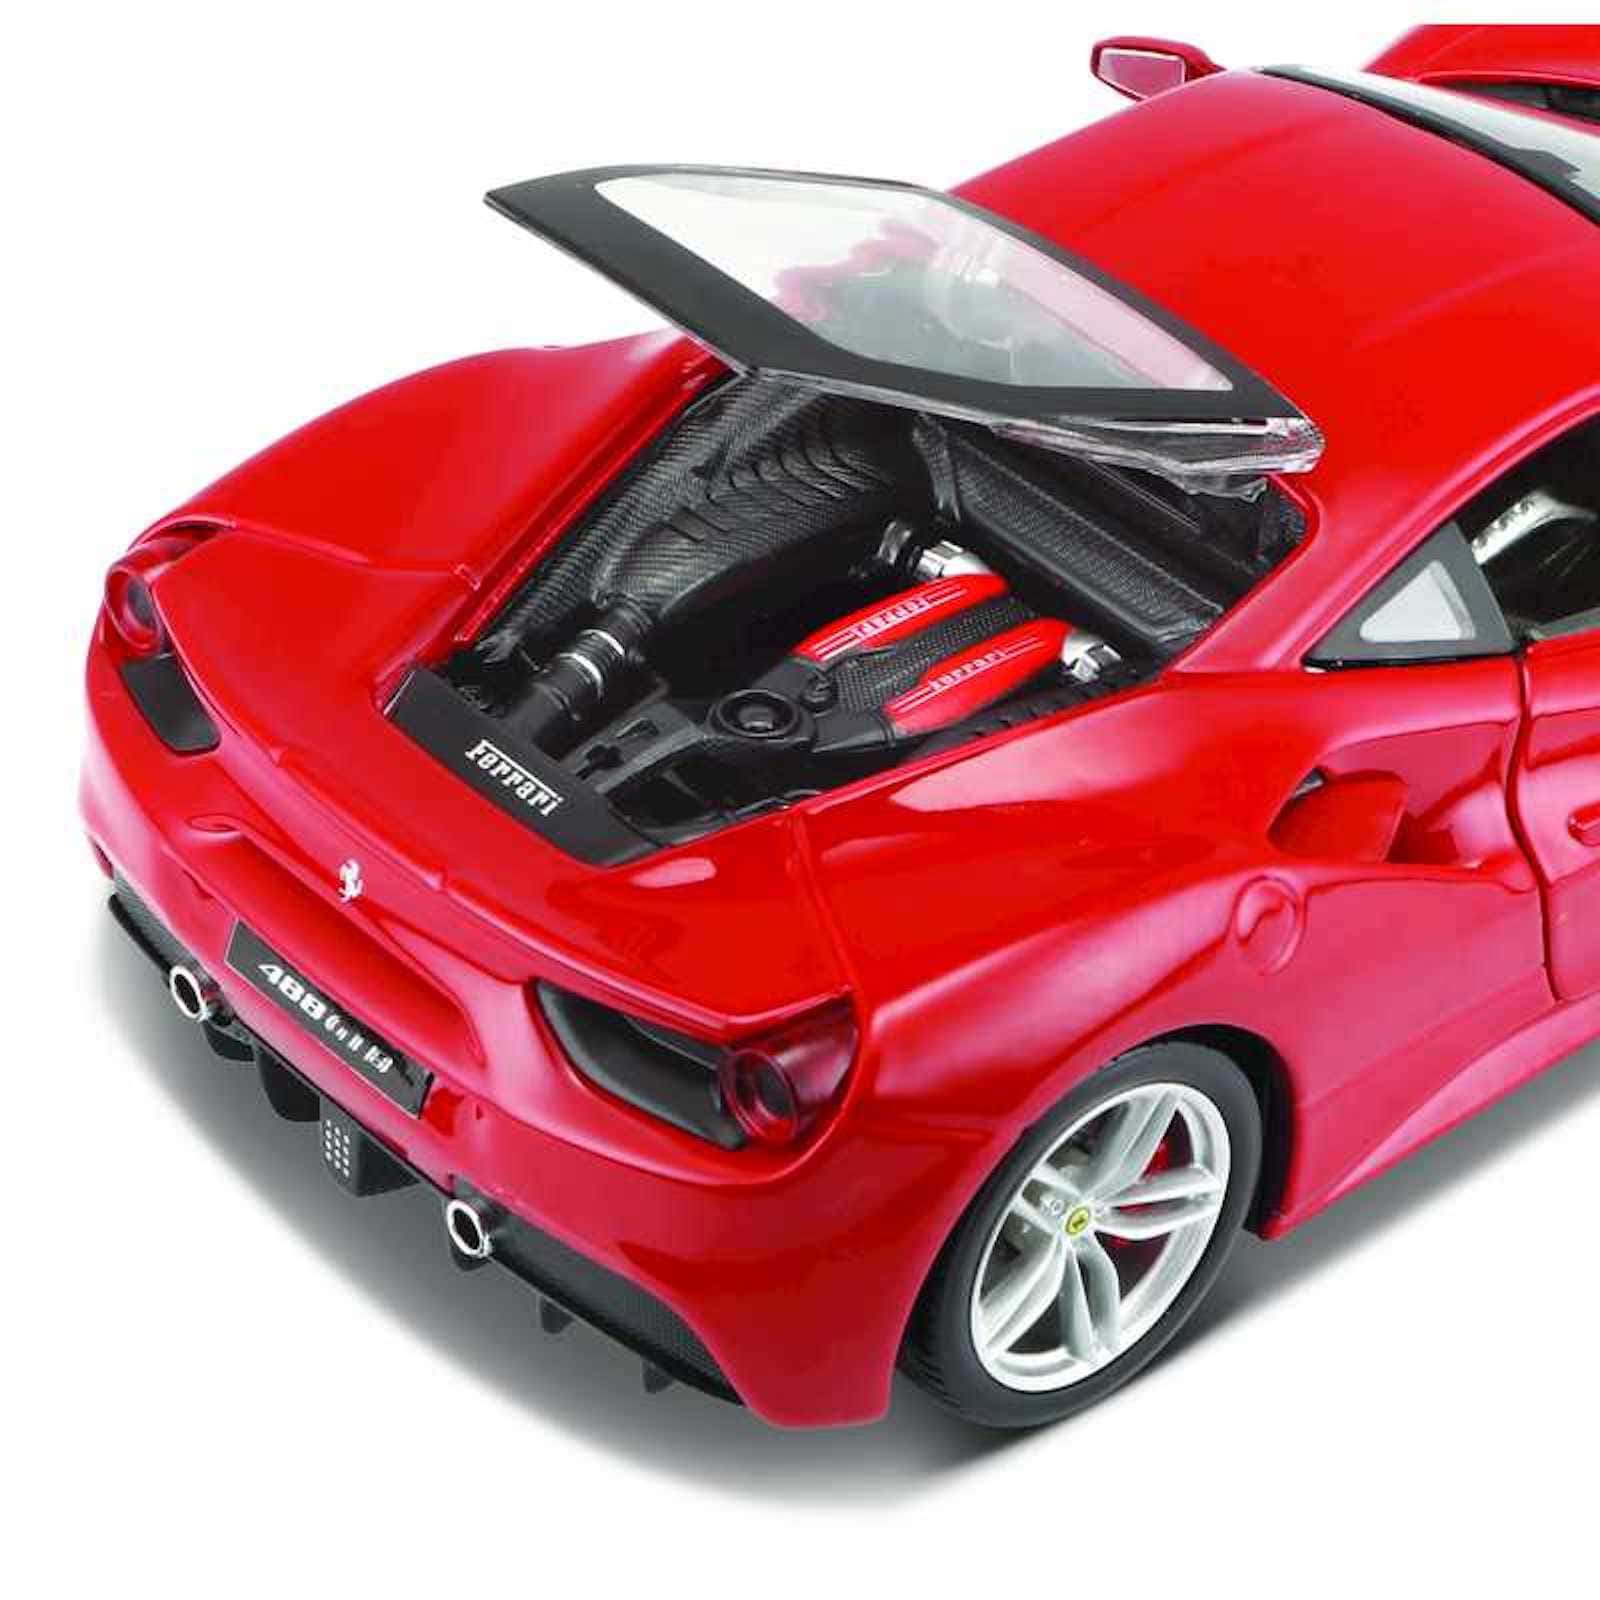 Ferrari 488 GTB Assembly Kit 1:24 Build Model Car Toy Childs Kids Dads Birthdays Collectors Gift